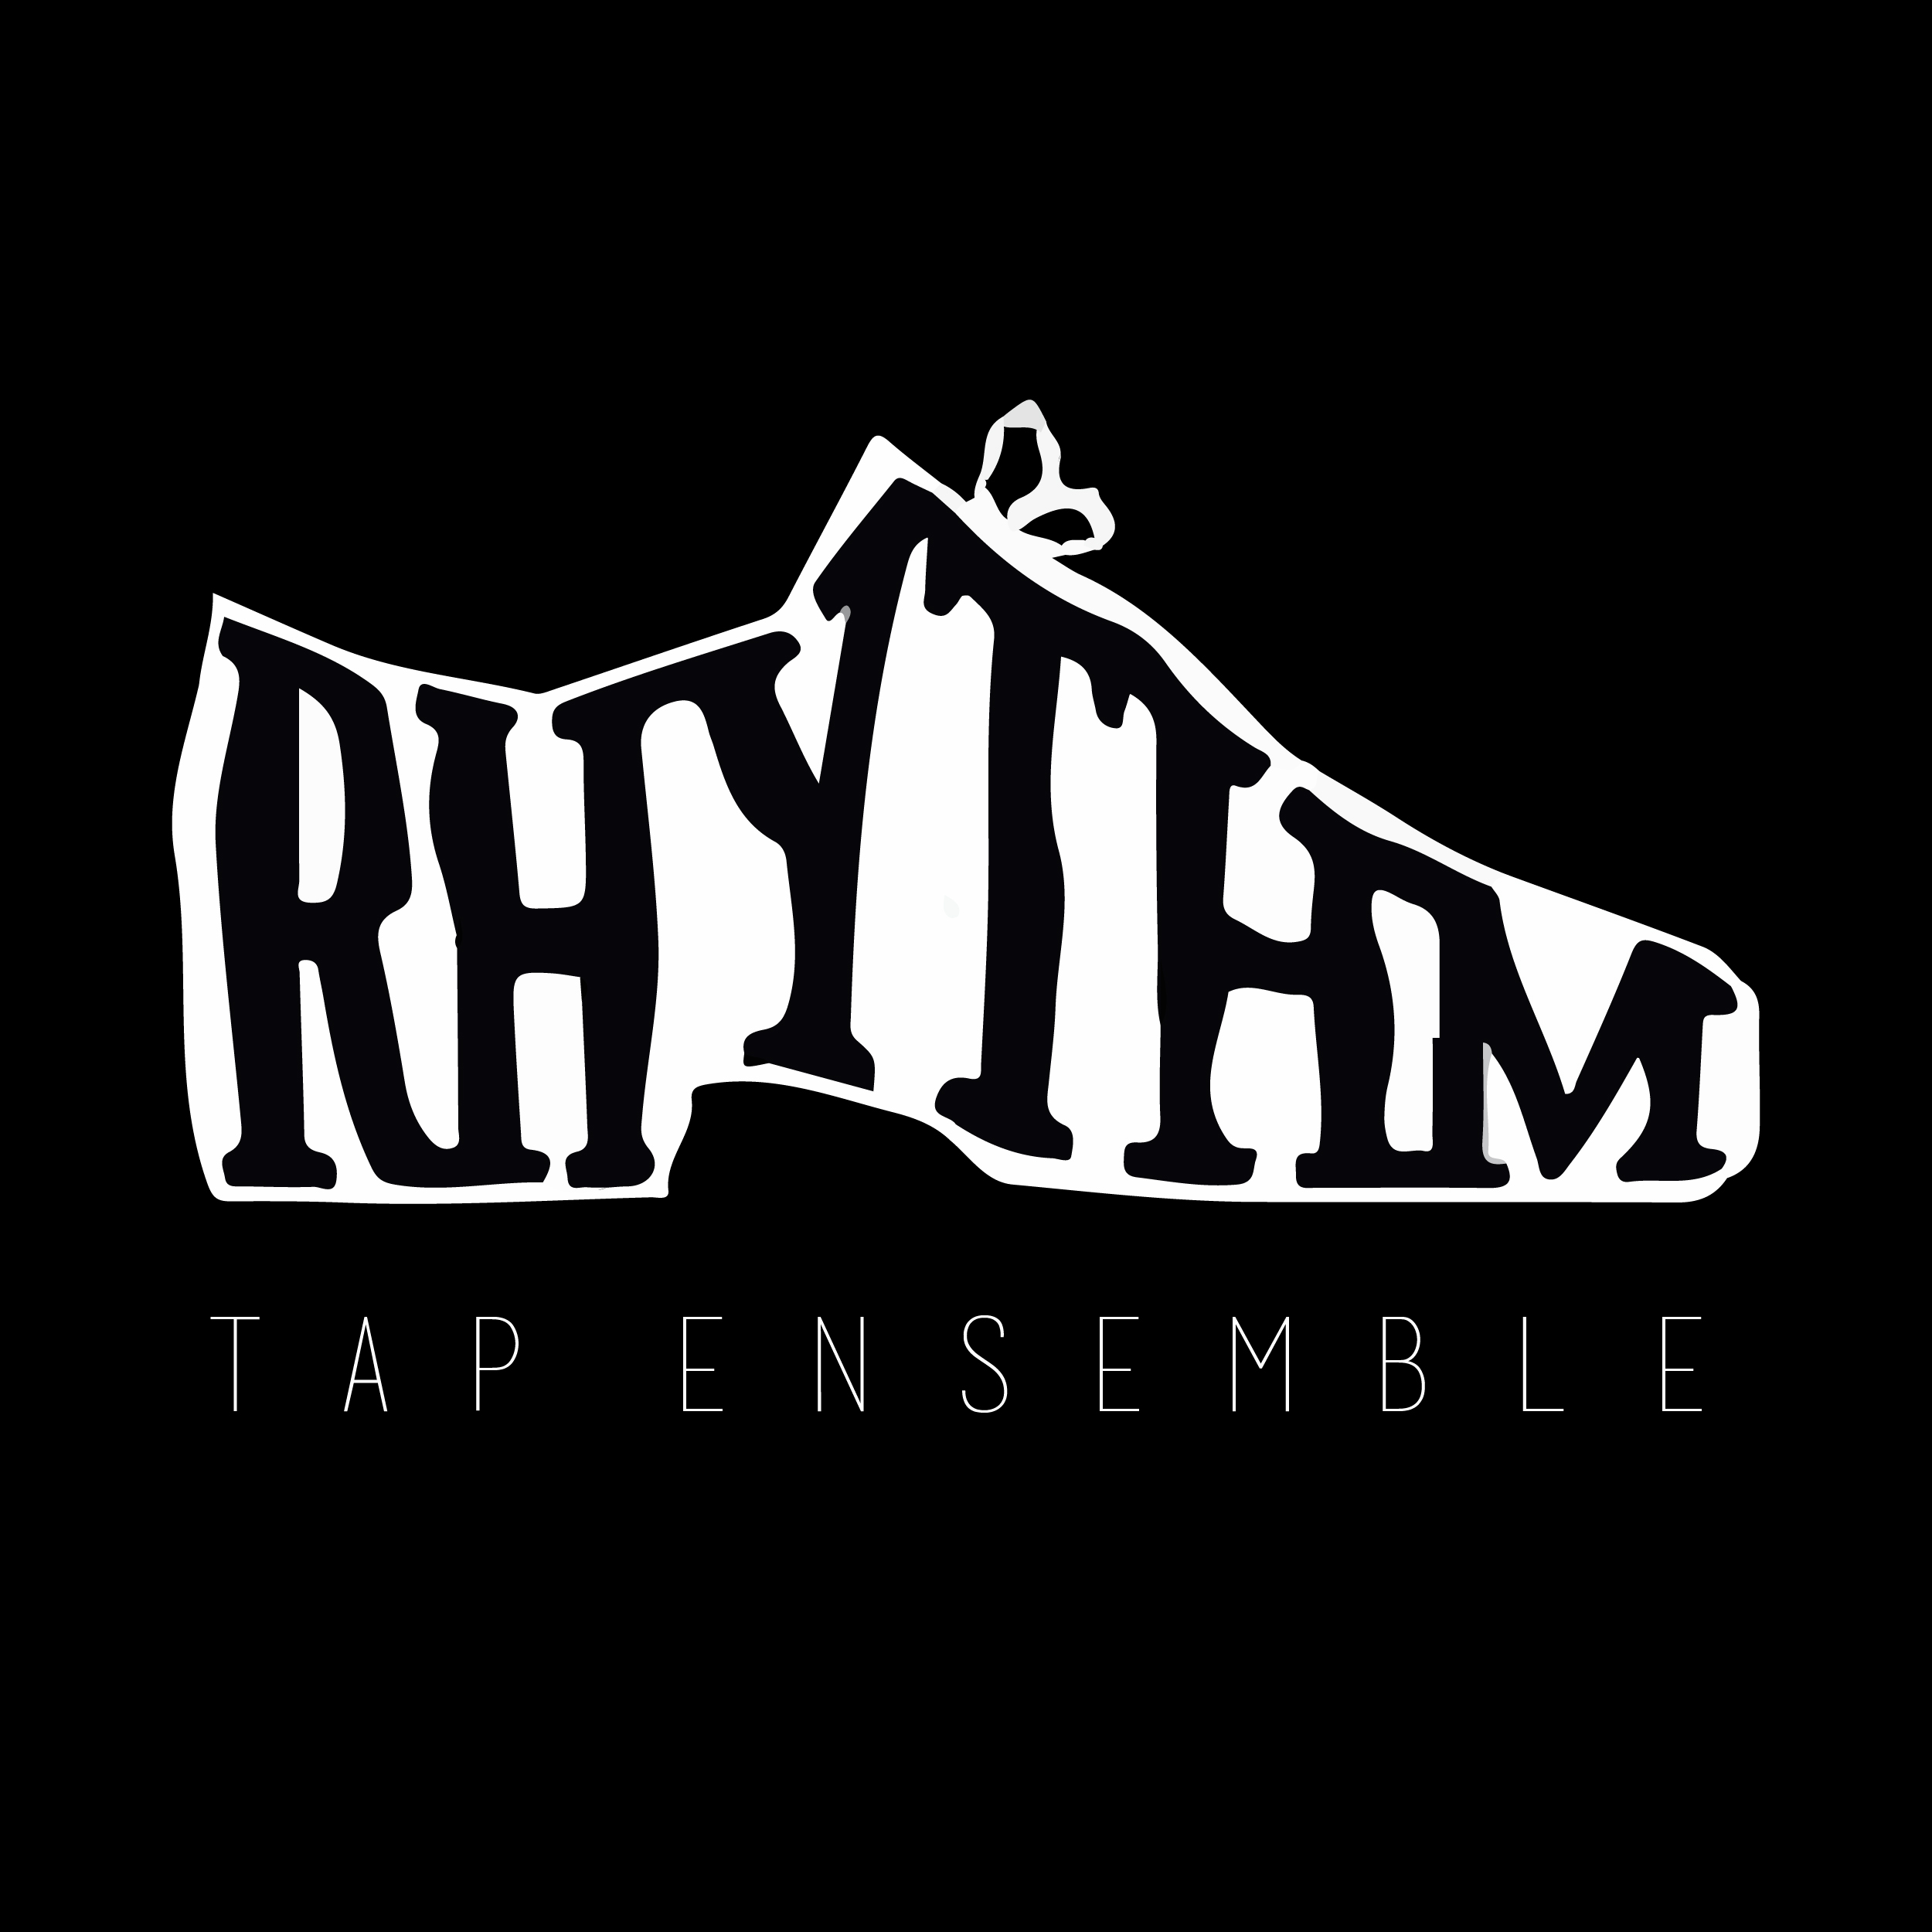 RhythM Tap Ensemble   RhythM Tap Ensemble was founded at the University of Michigan in the Fall of 2000 with the purpose of promoting tap dance on campus. They are a student-run performance group comprised of passionate and dedicated, advanced tap dancers. They choreograph their own dances and conduct regular rehearsals during the school year. Their efforts can be seen in several large performances each year, as well as several variety shows and charity events.